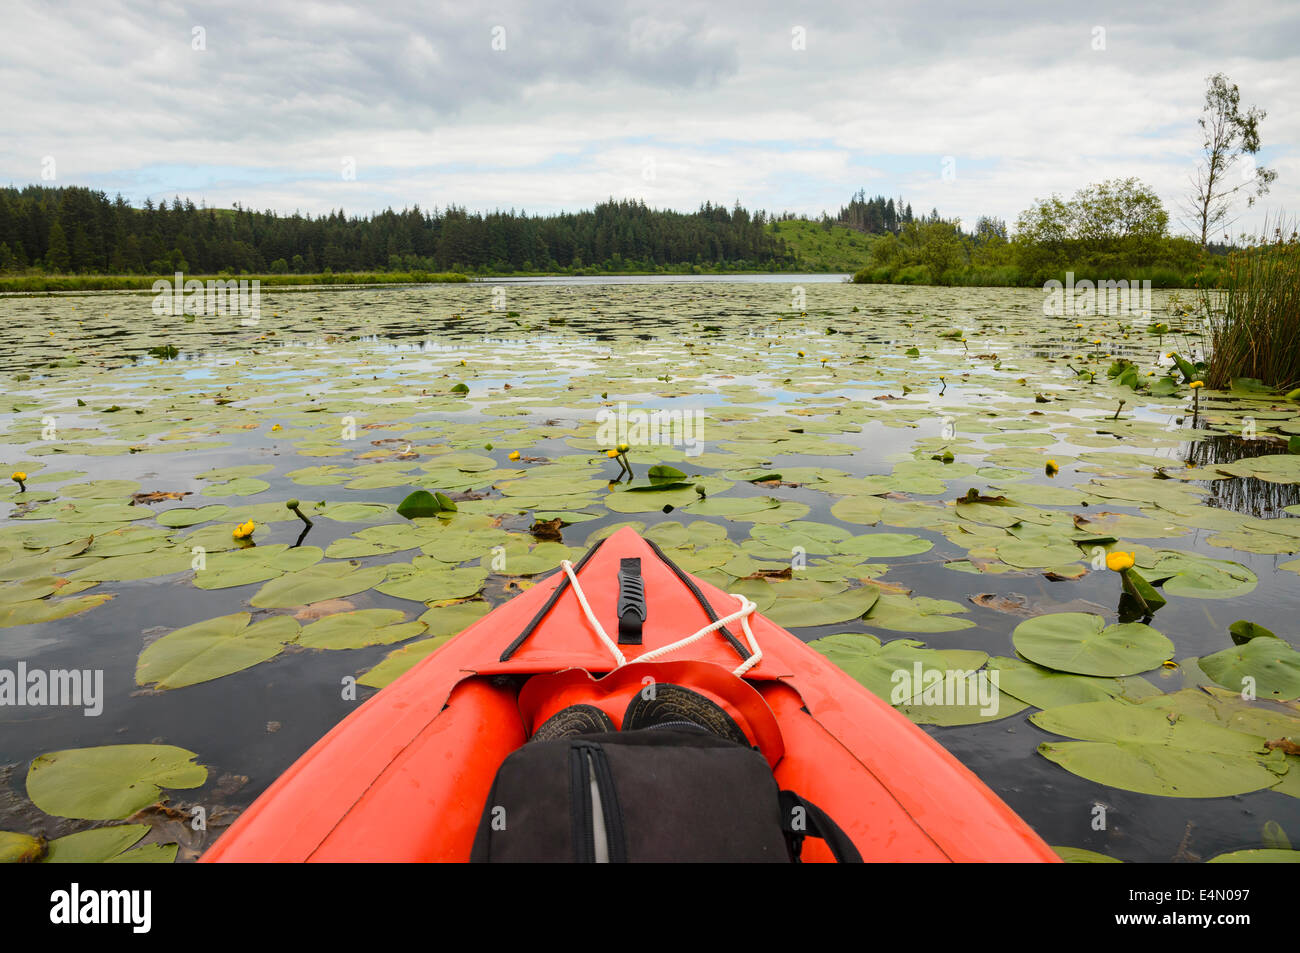 Canoeing on Stroan Loch, Galloway Forest, Dumfries & Galloway, Scotland - Stock Image